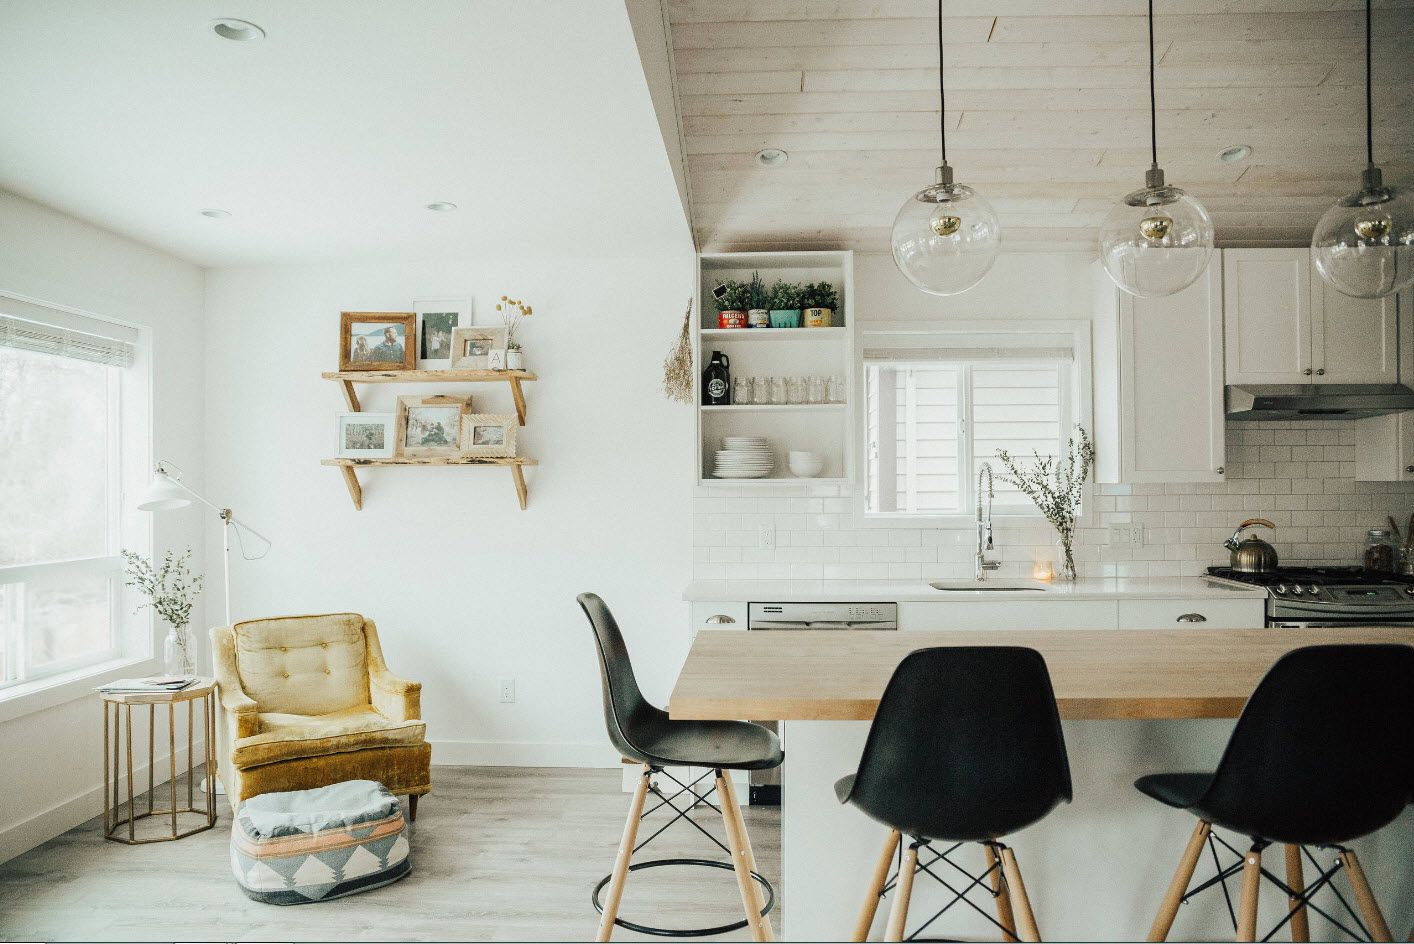 White rustic kitchen with black wooden chairs